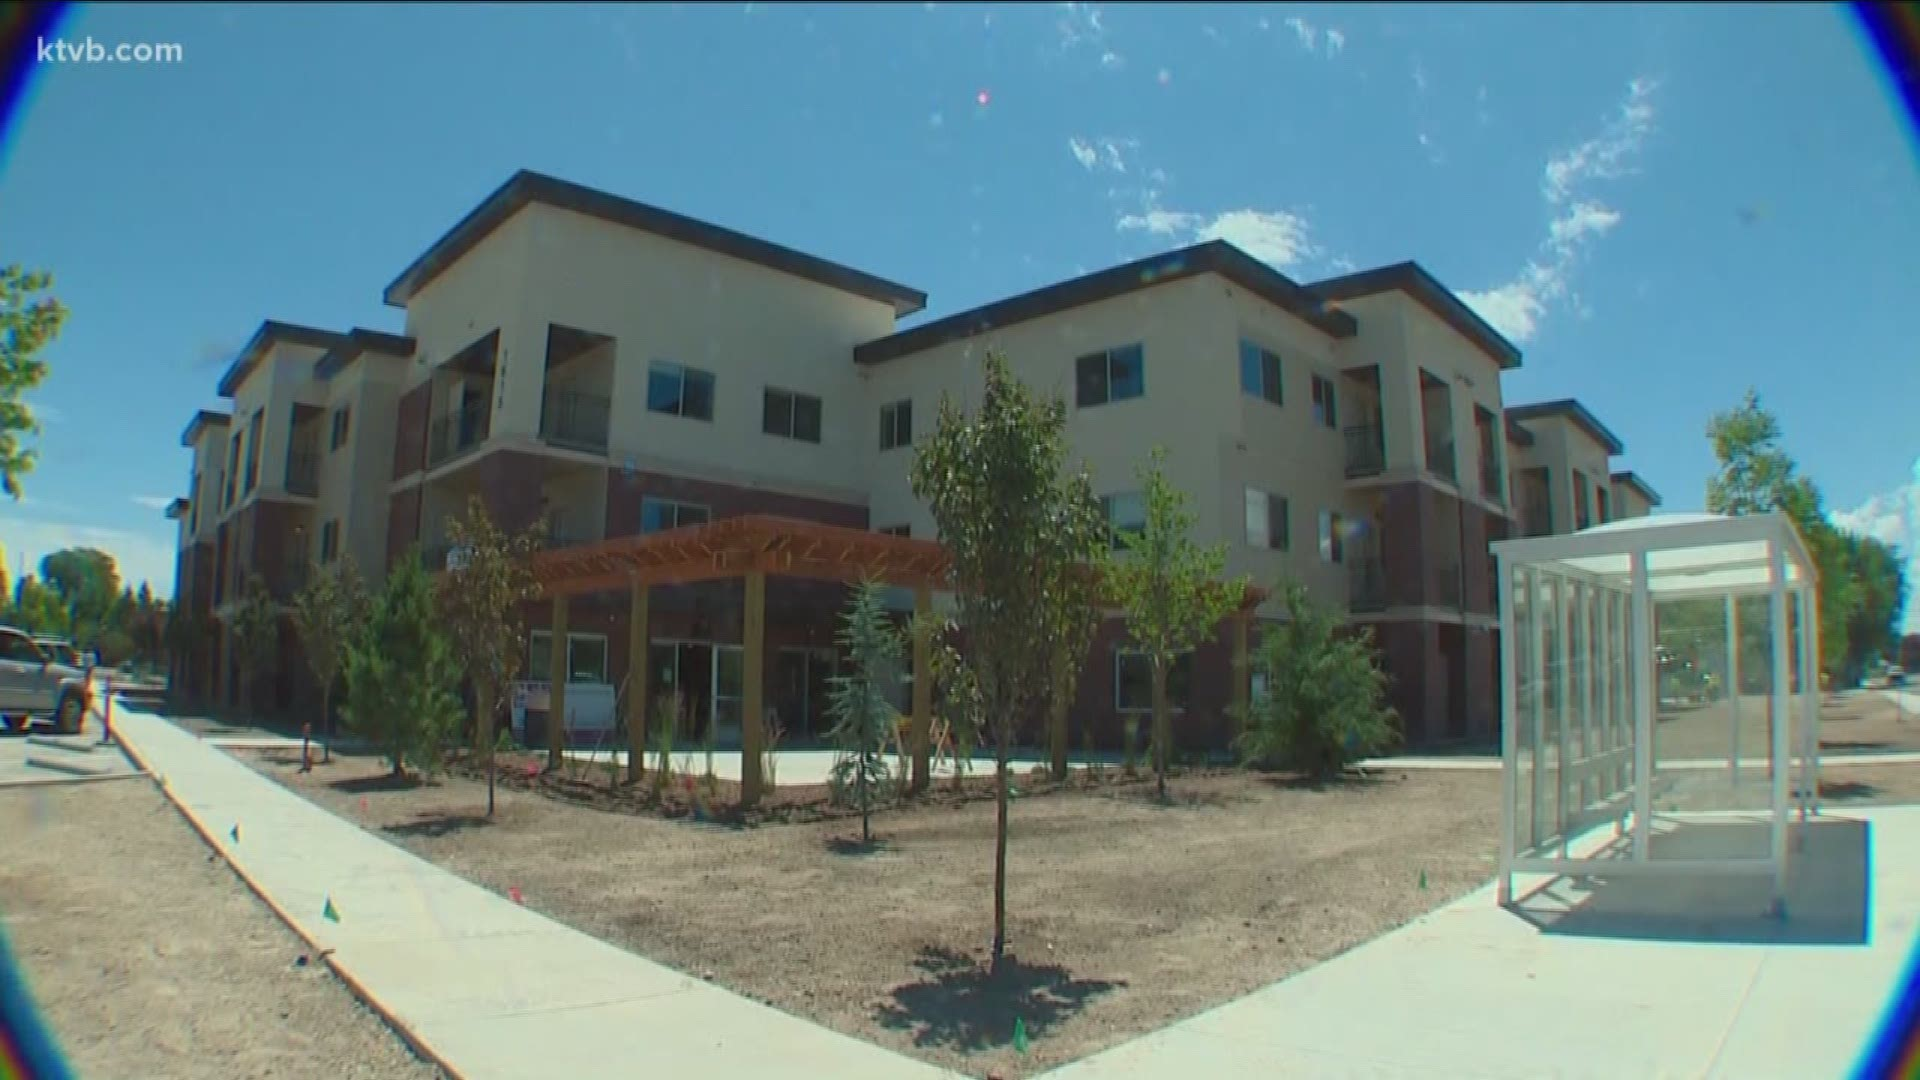 Affordable Housing Complex For Seniors Set To Open In